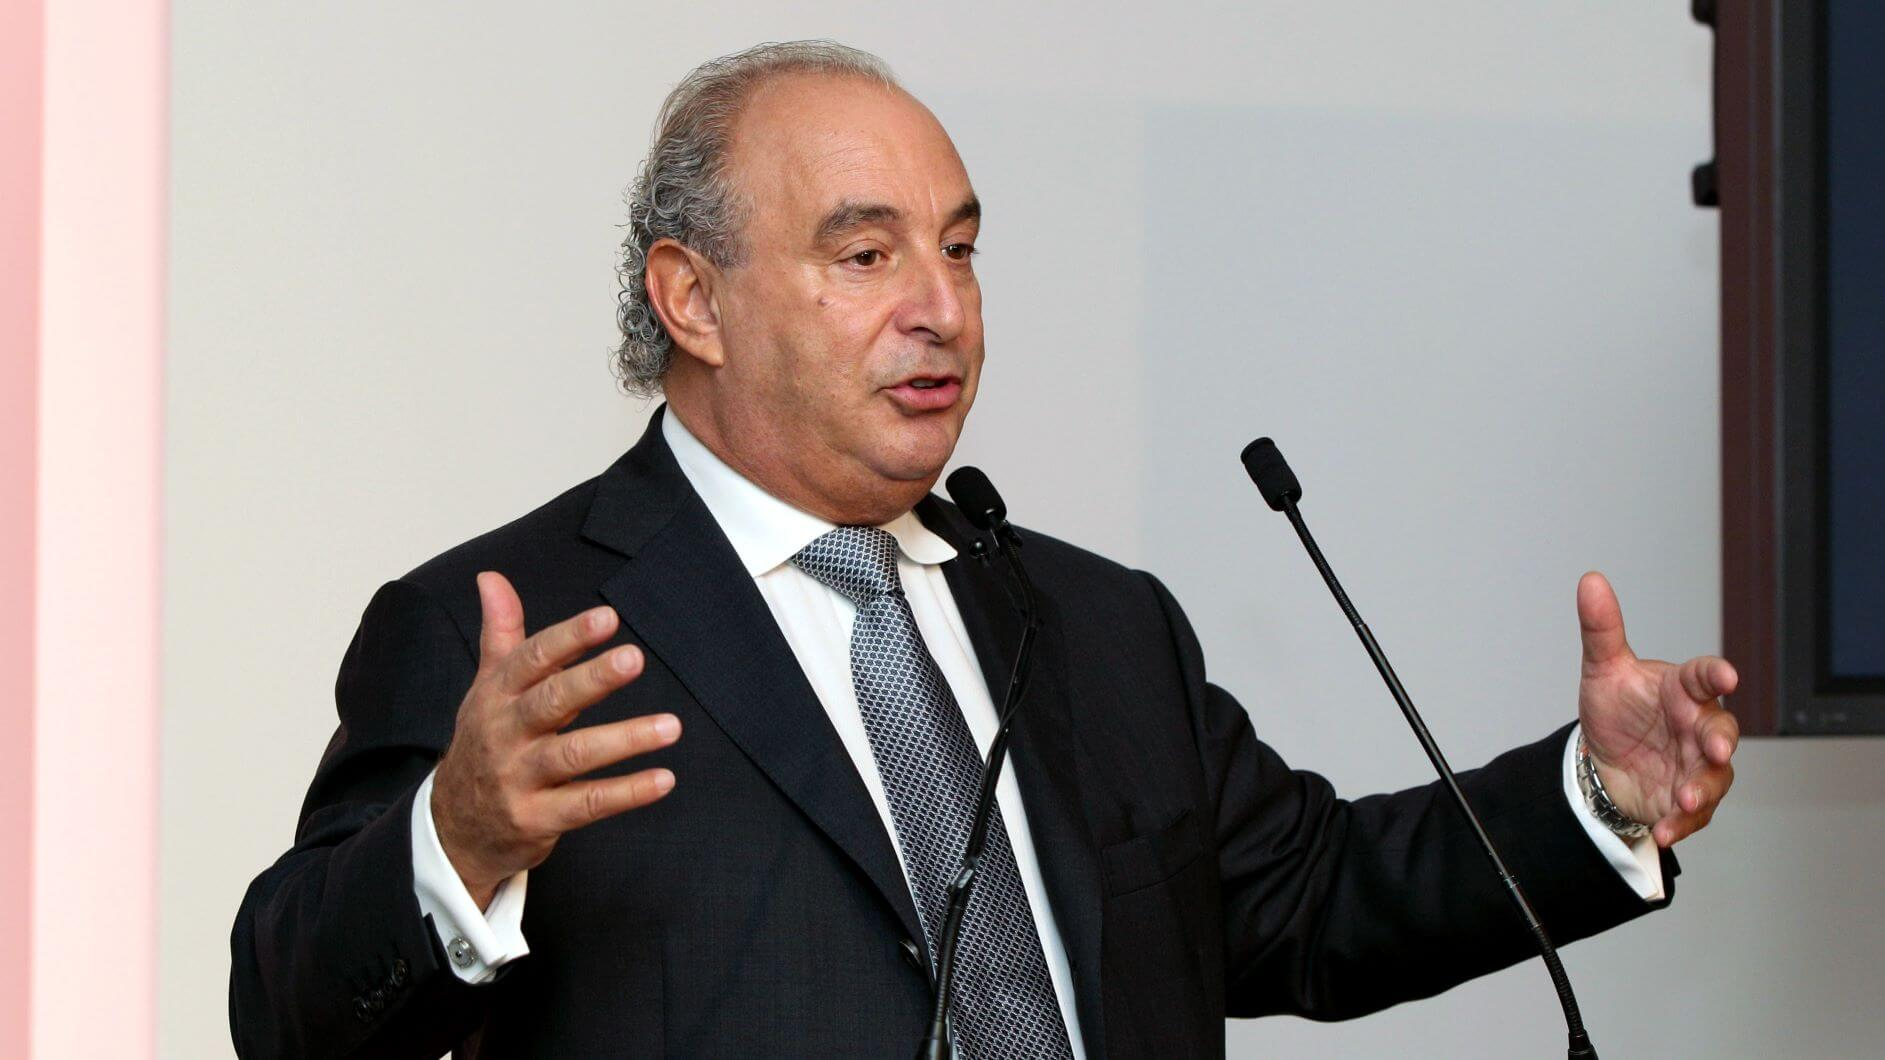 Assault Charges Against Sir Philip Green Dropped By US Prosecutors